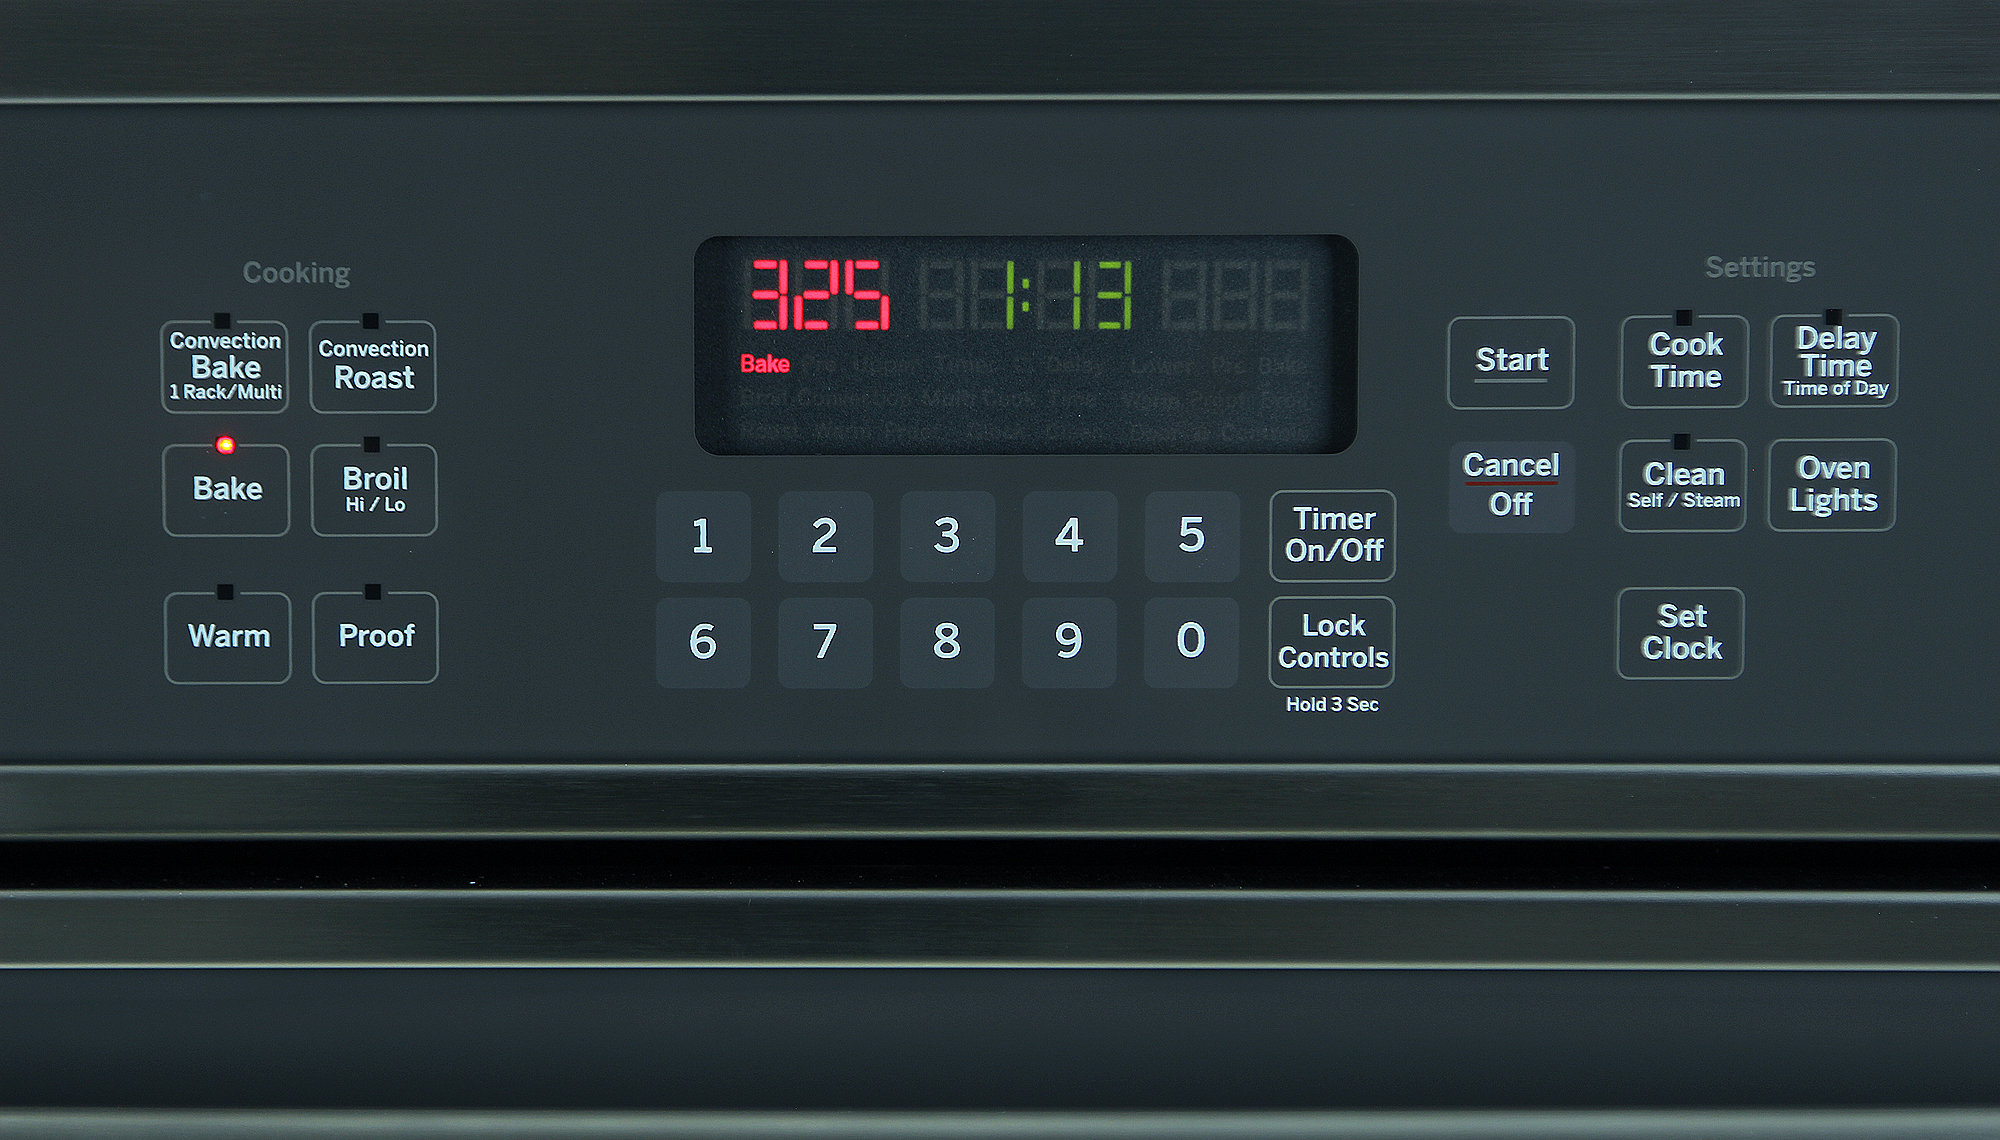 The Glass Touch controls are a welcome addition to the oven.